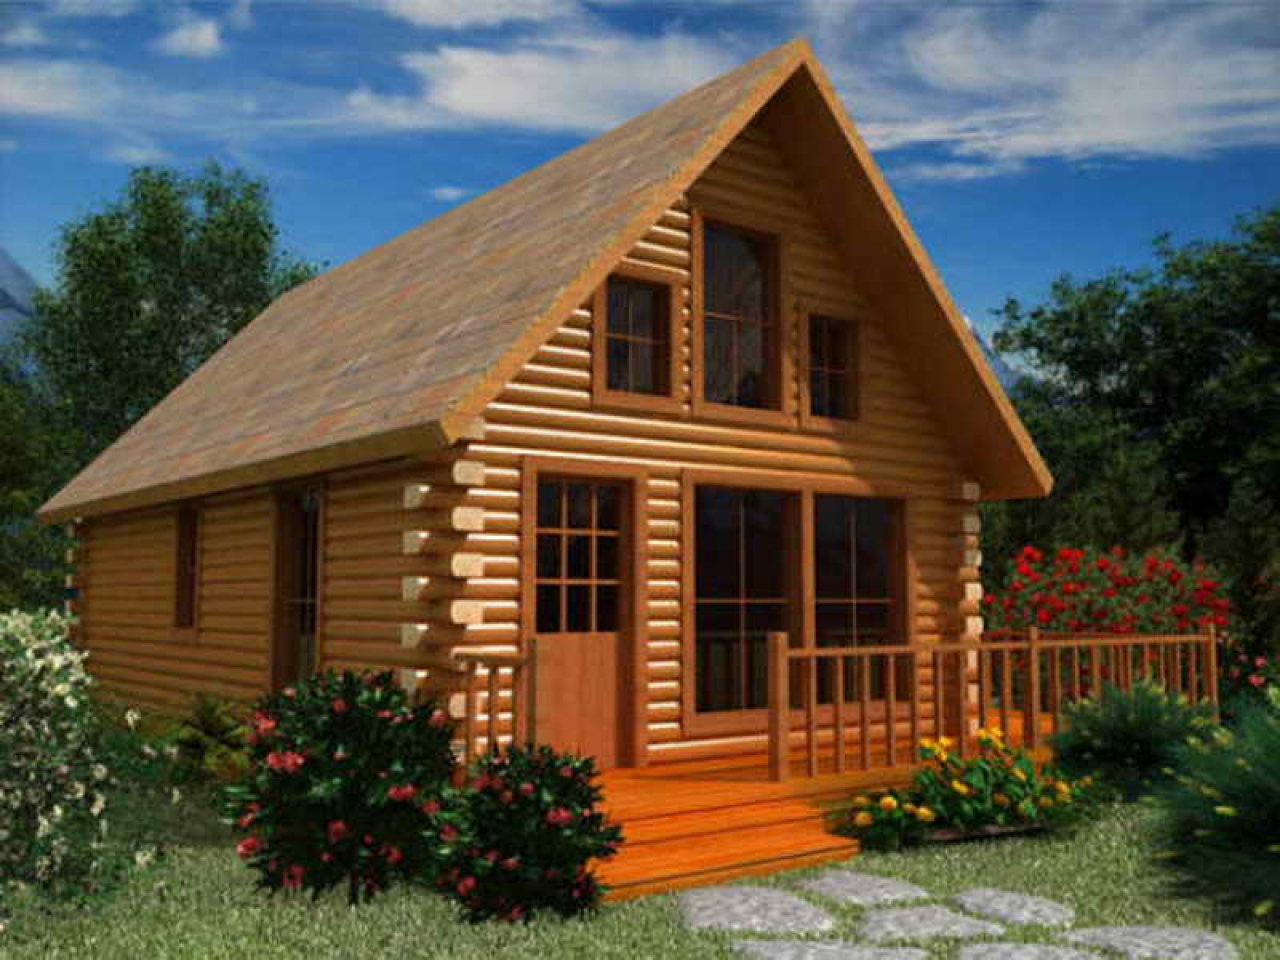 floor plans for small cabins small log cabin floor plans small log cabin floor plans with loft small cabins with lofts 5134